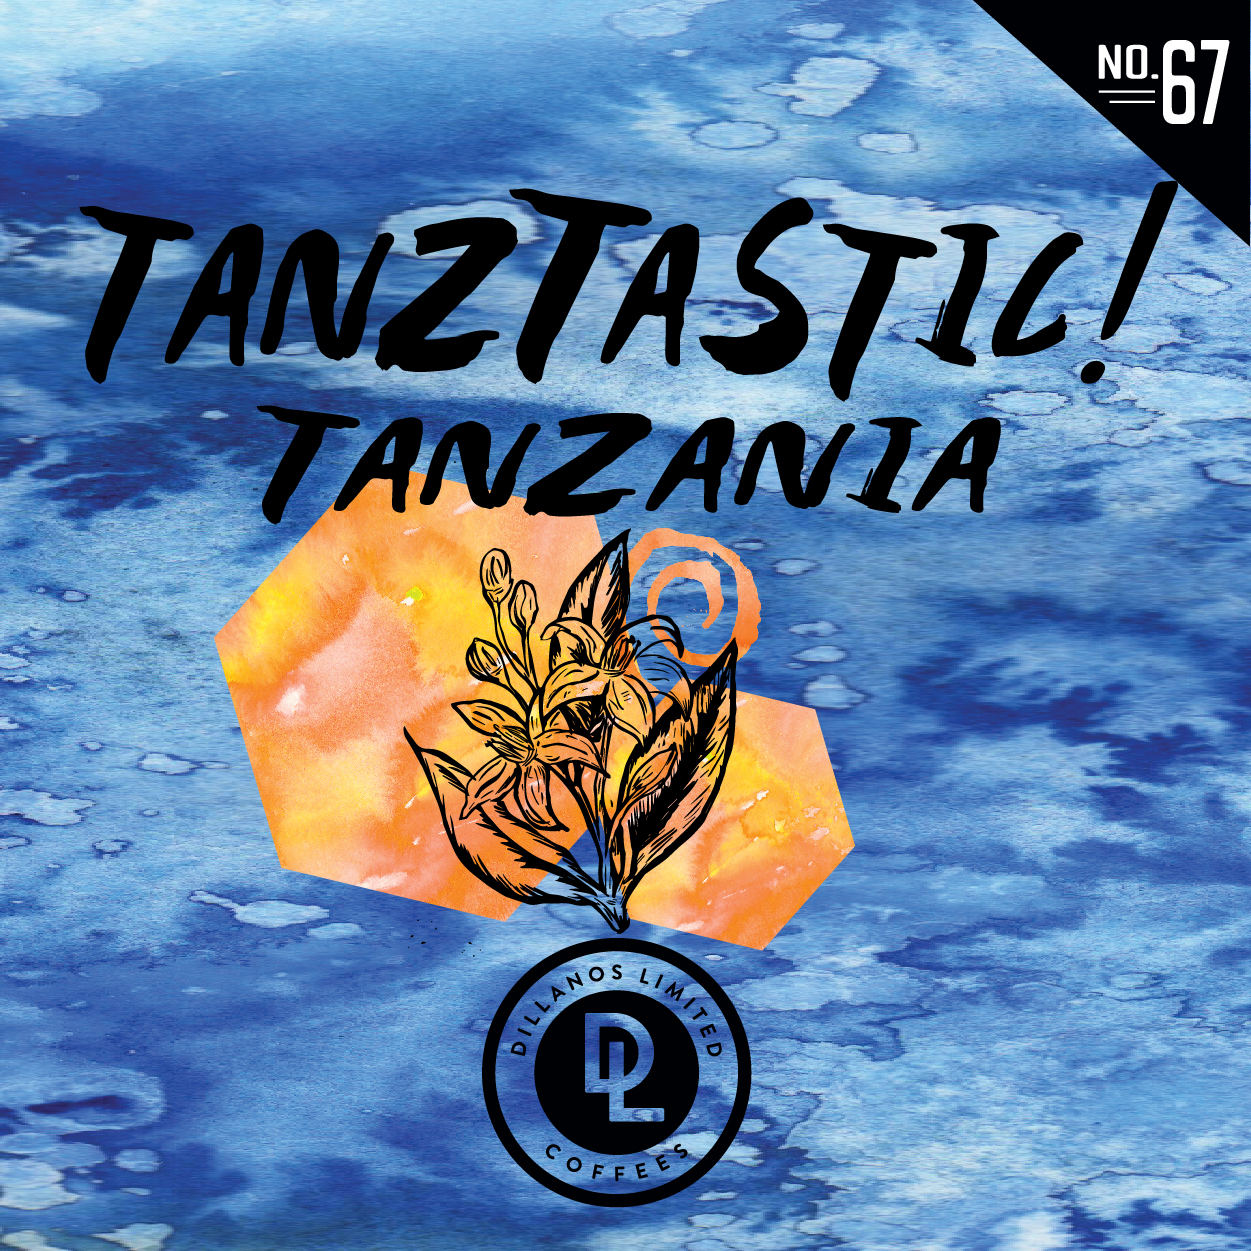 DL No. 67 TanzTastic by Dillanos Coffee Roasters